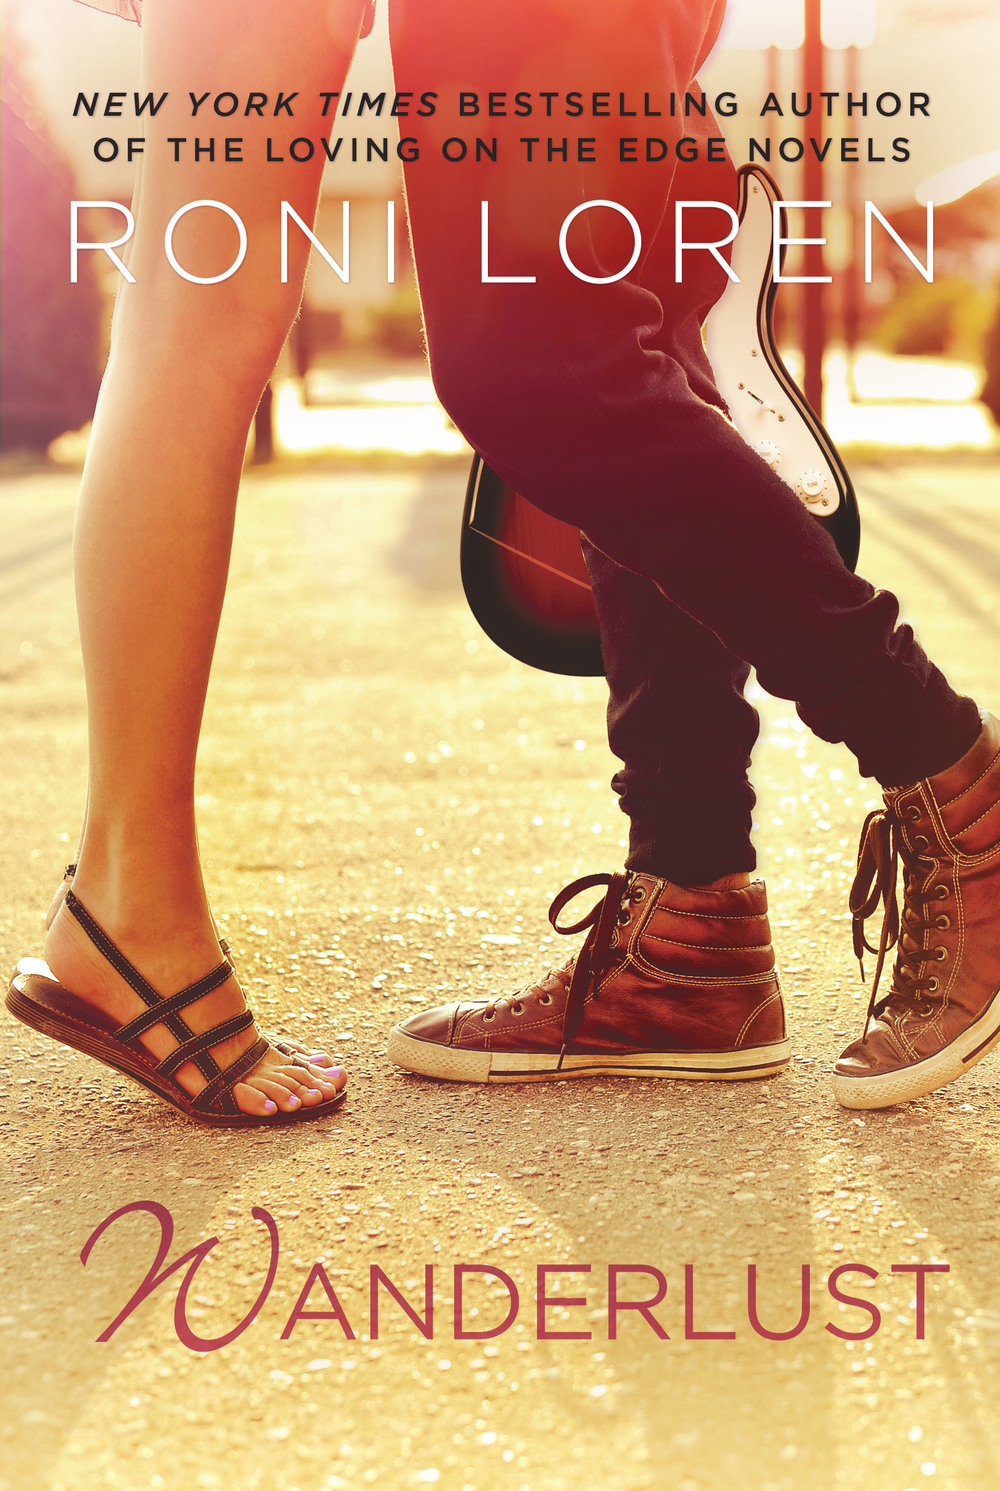 A rockstar romance - Get it for $3.99! Find out more